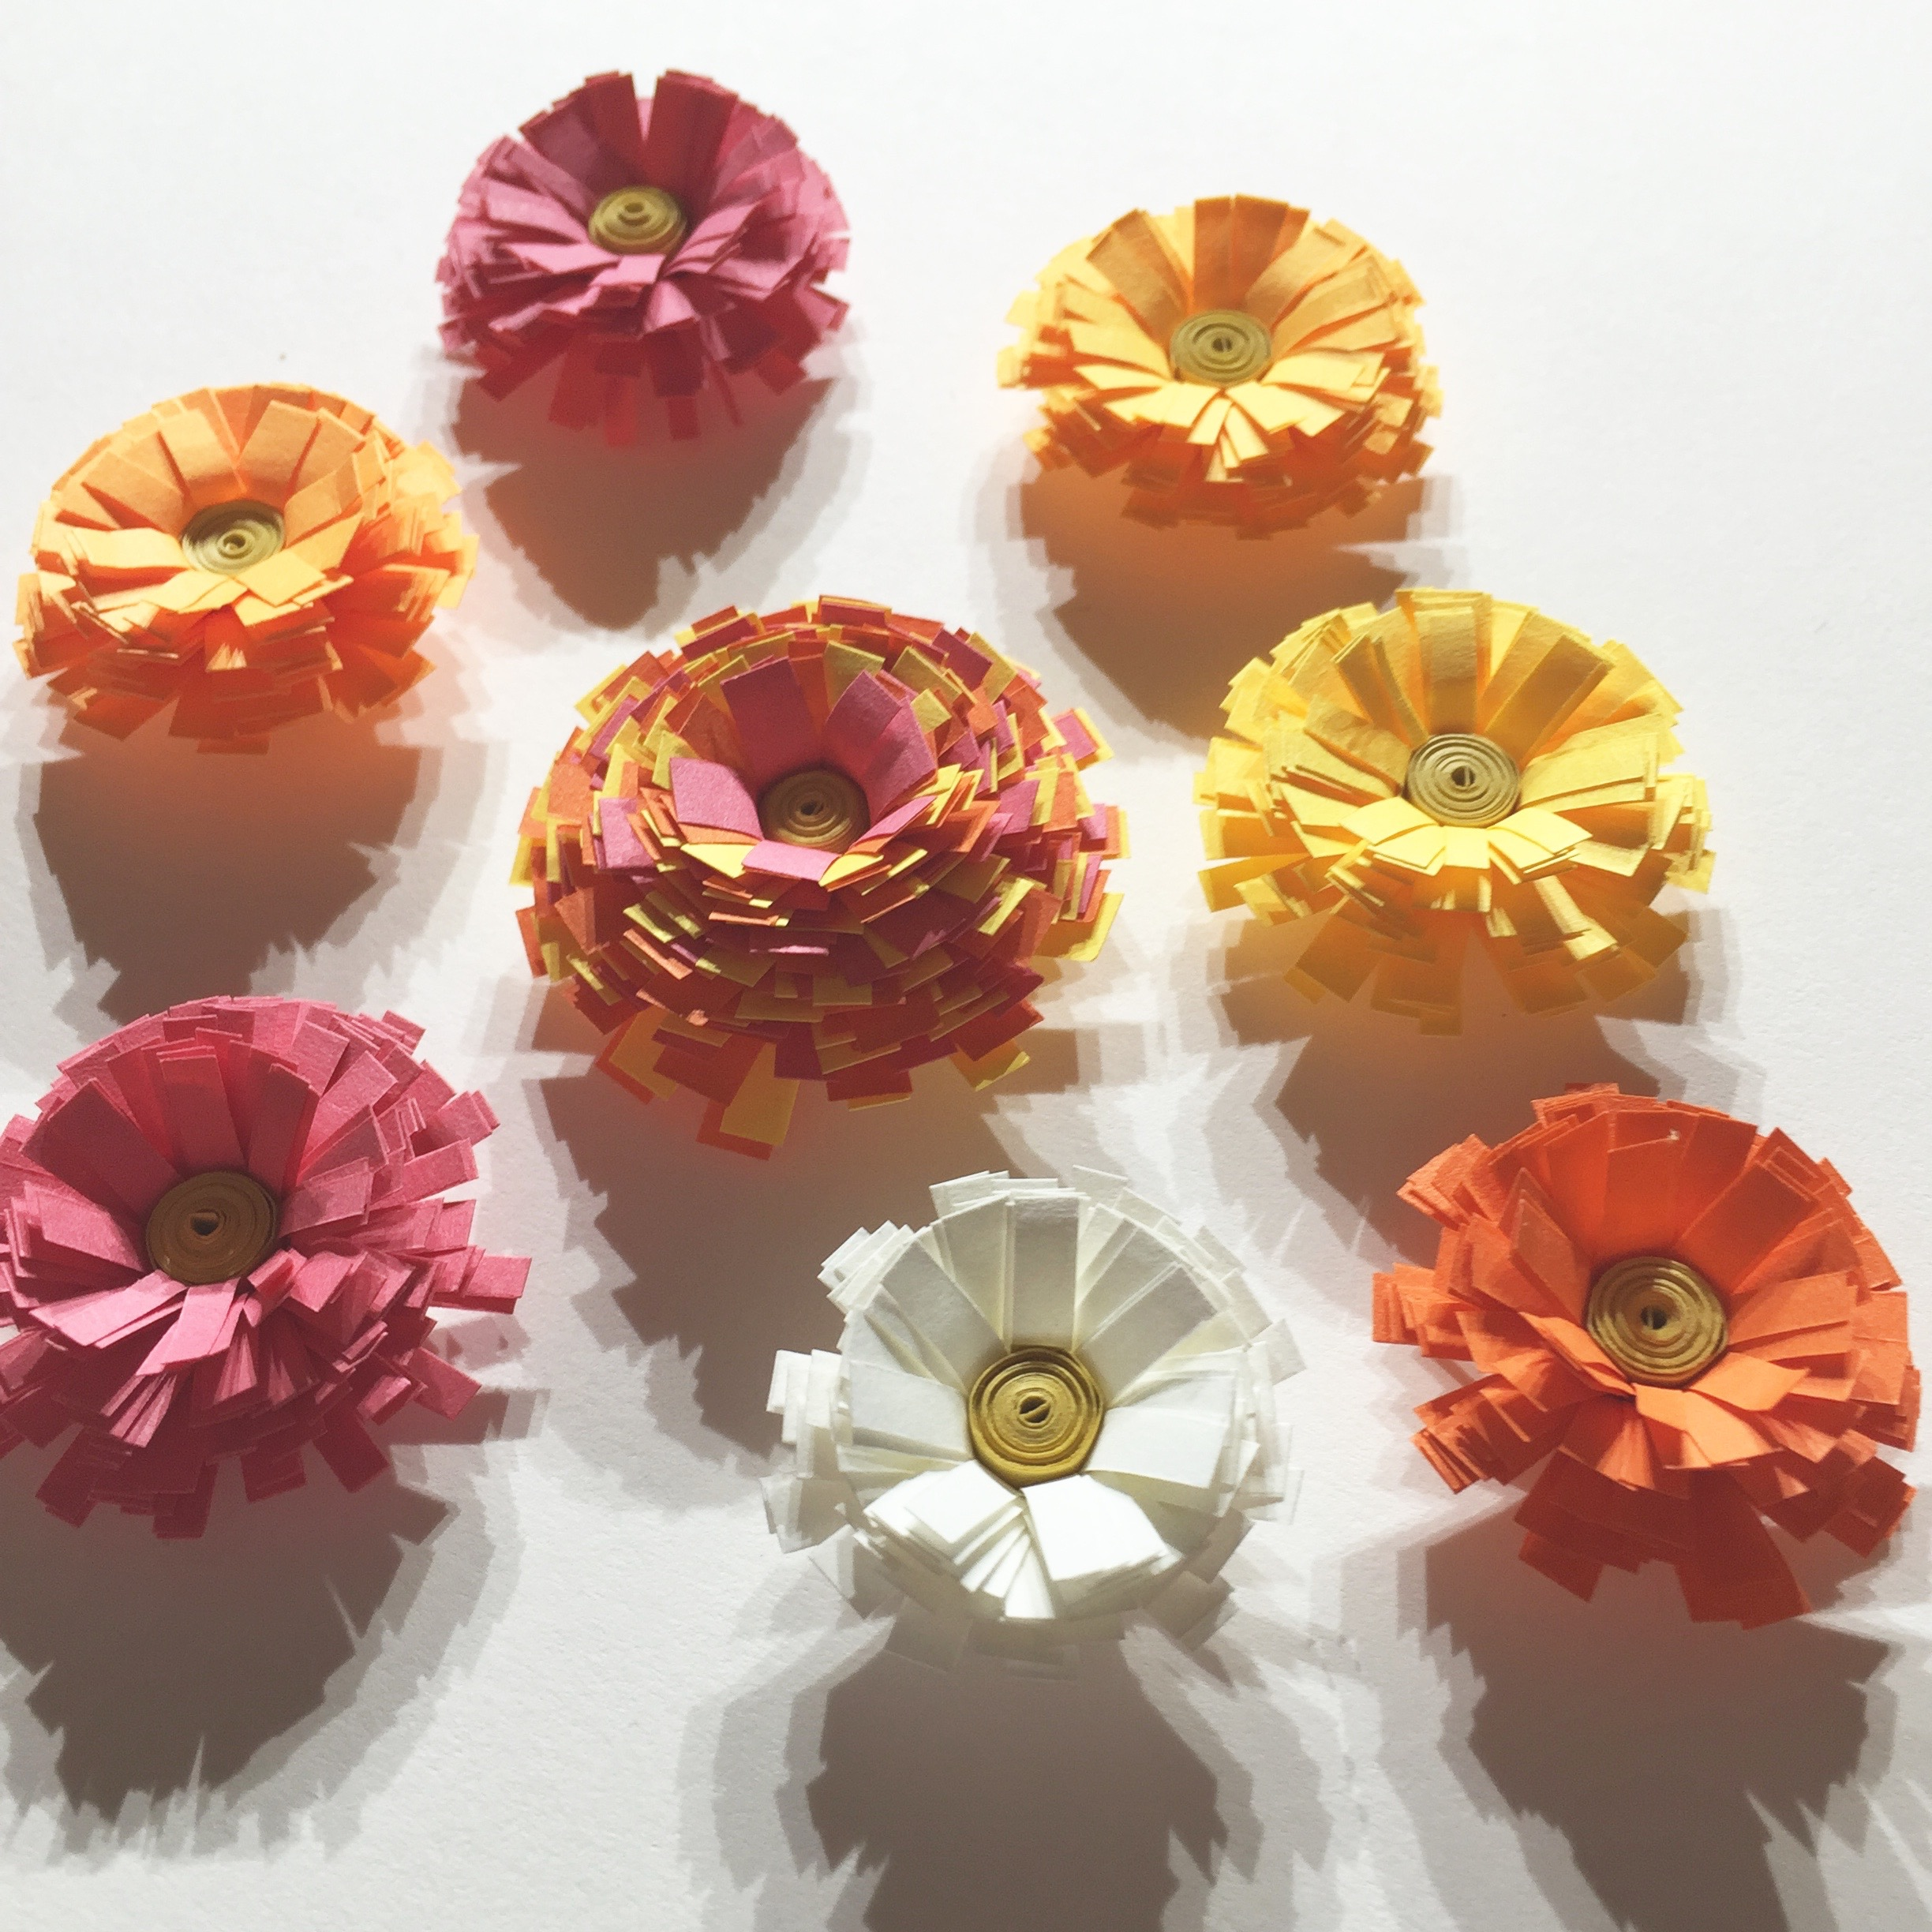 Image of quilled fringe flowers